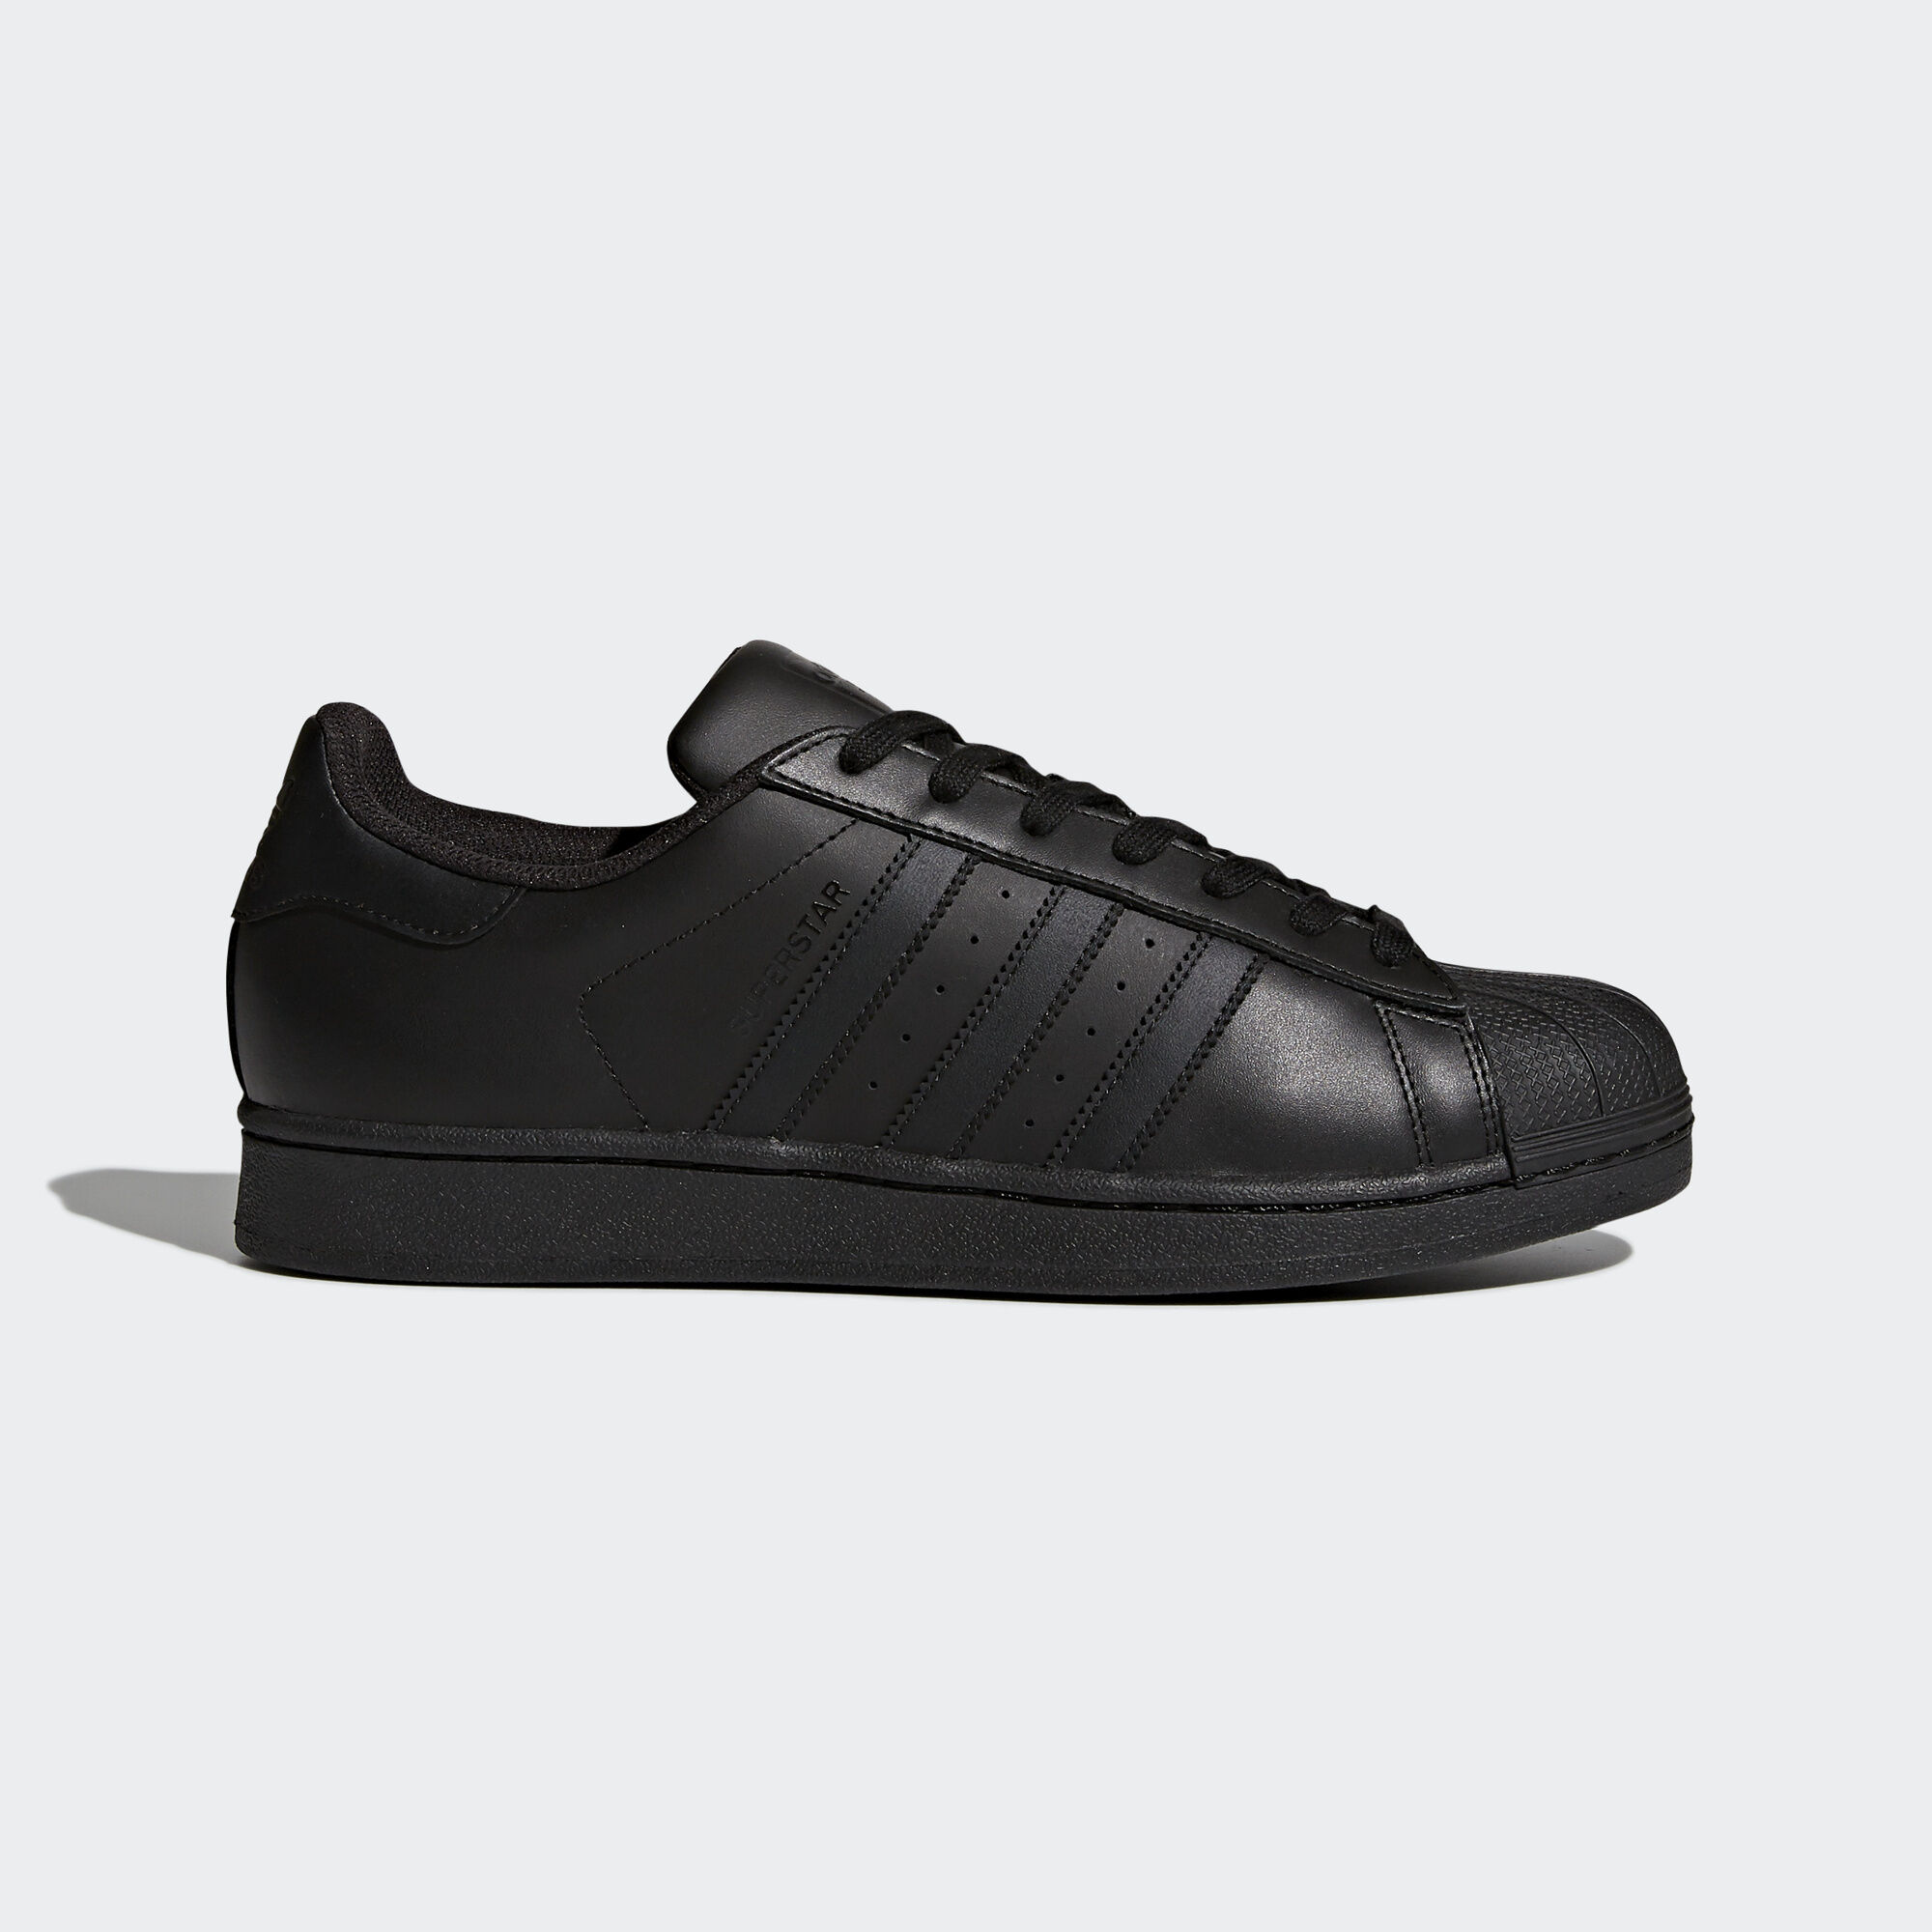 Adidas Consortium x Kasina Superstar 80s White Core Black